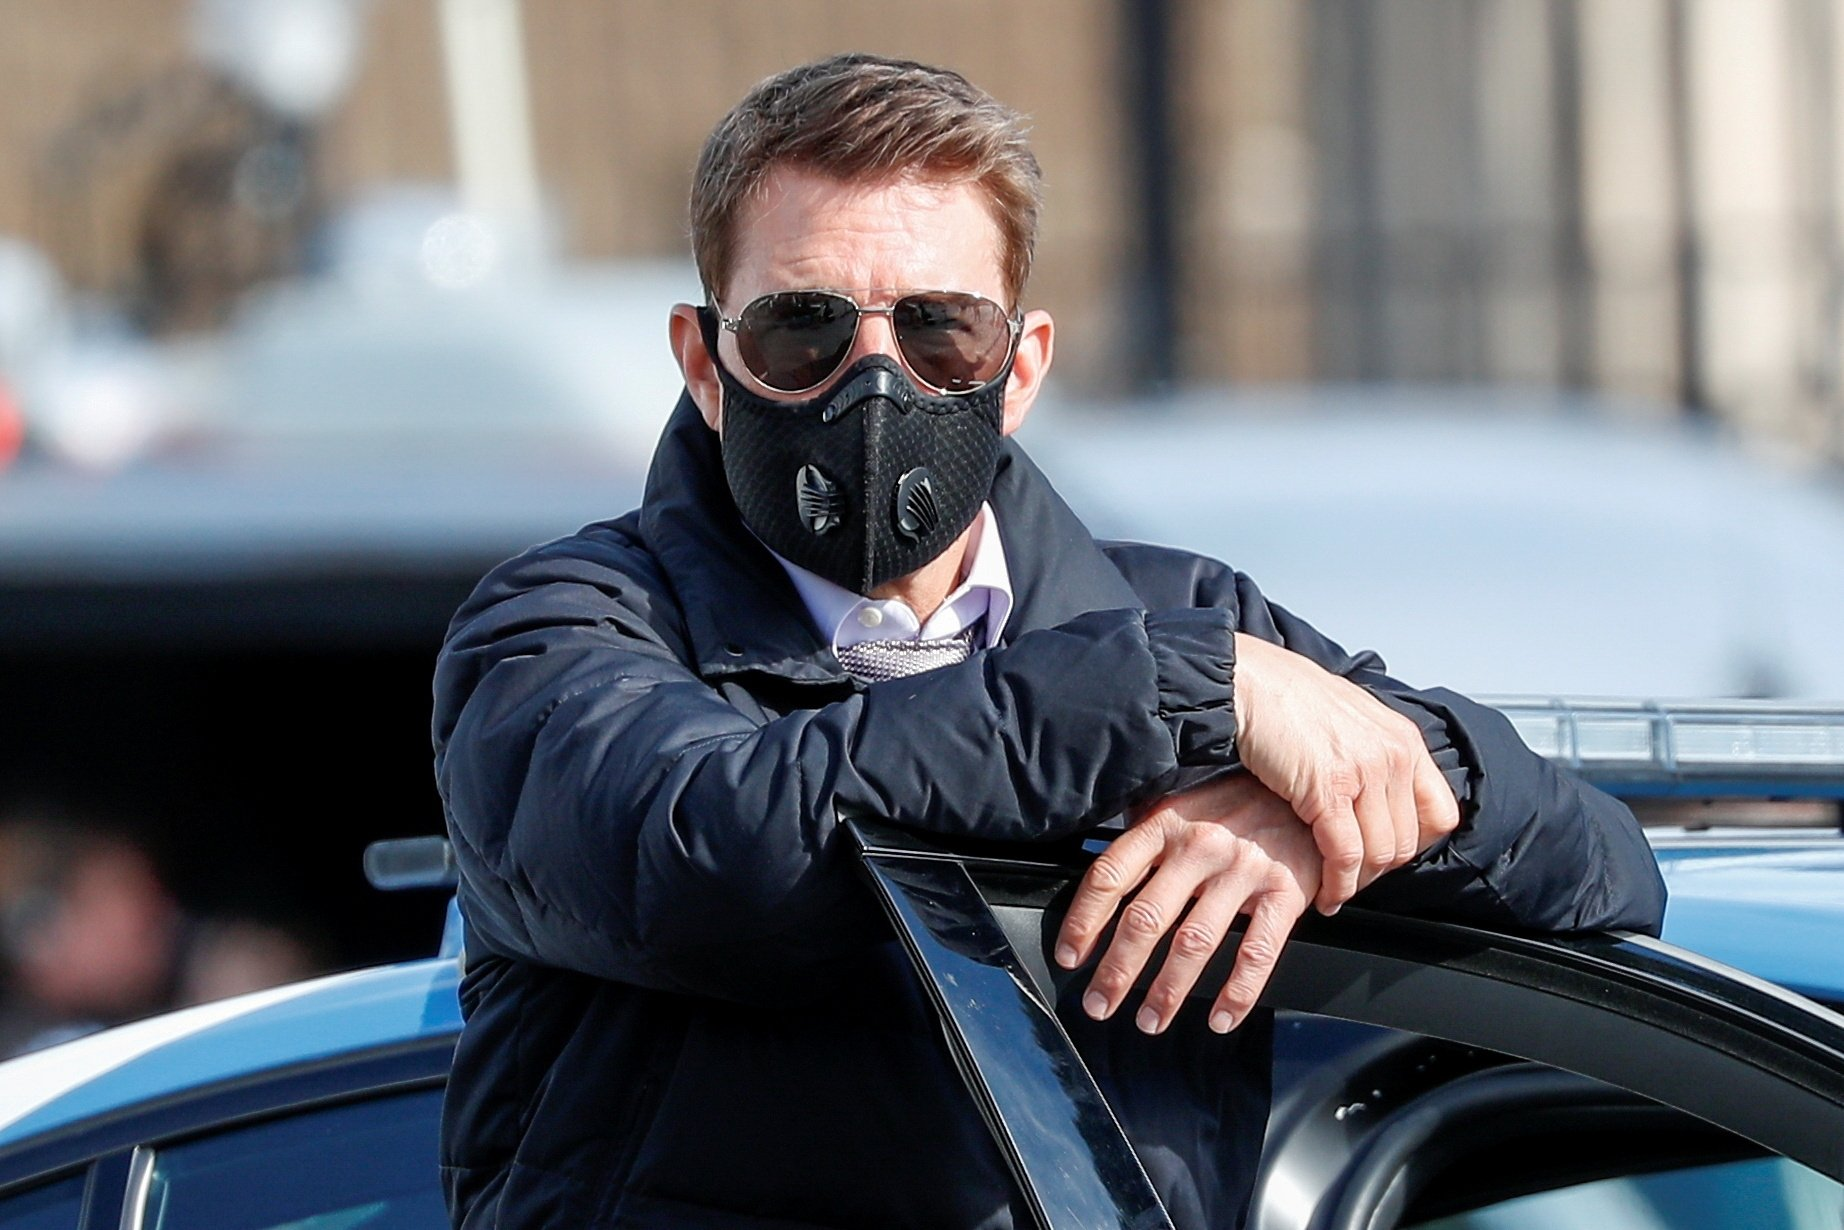 Actor Tom Cruise is seen on the set of 'Mission. Impossible 7' while filming in Rome, Italy, Oct. 13, 2020. (REUTERS Photo)